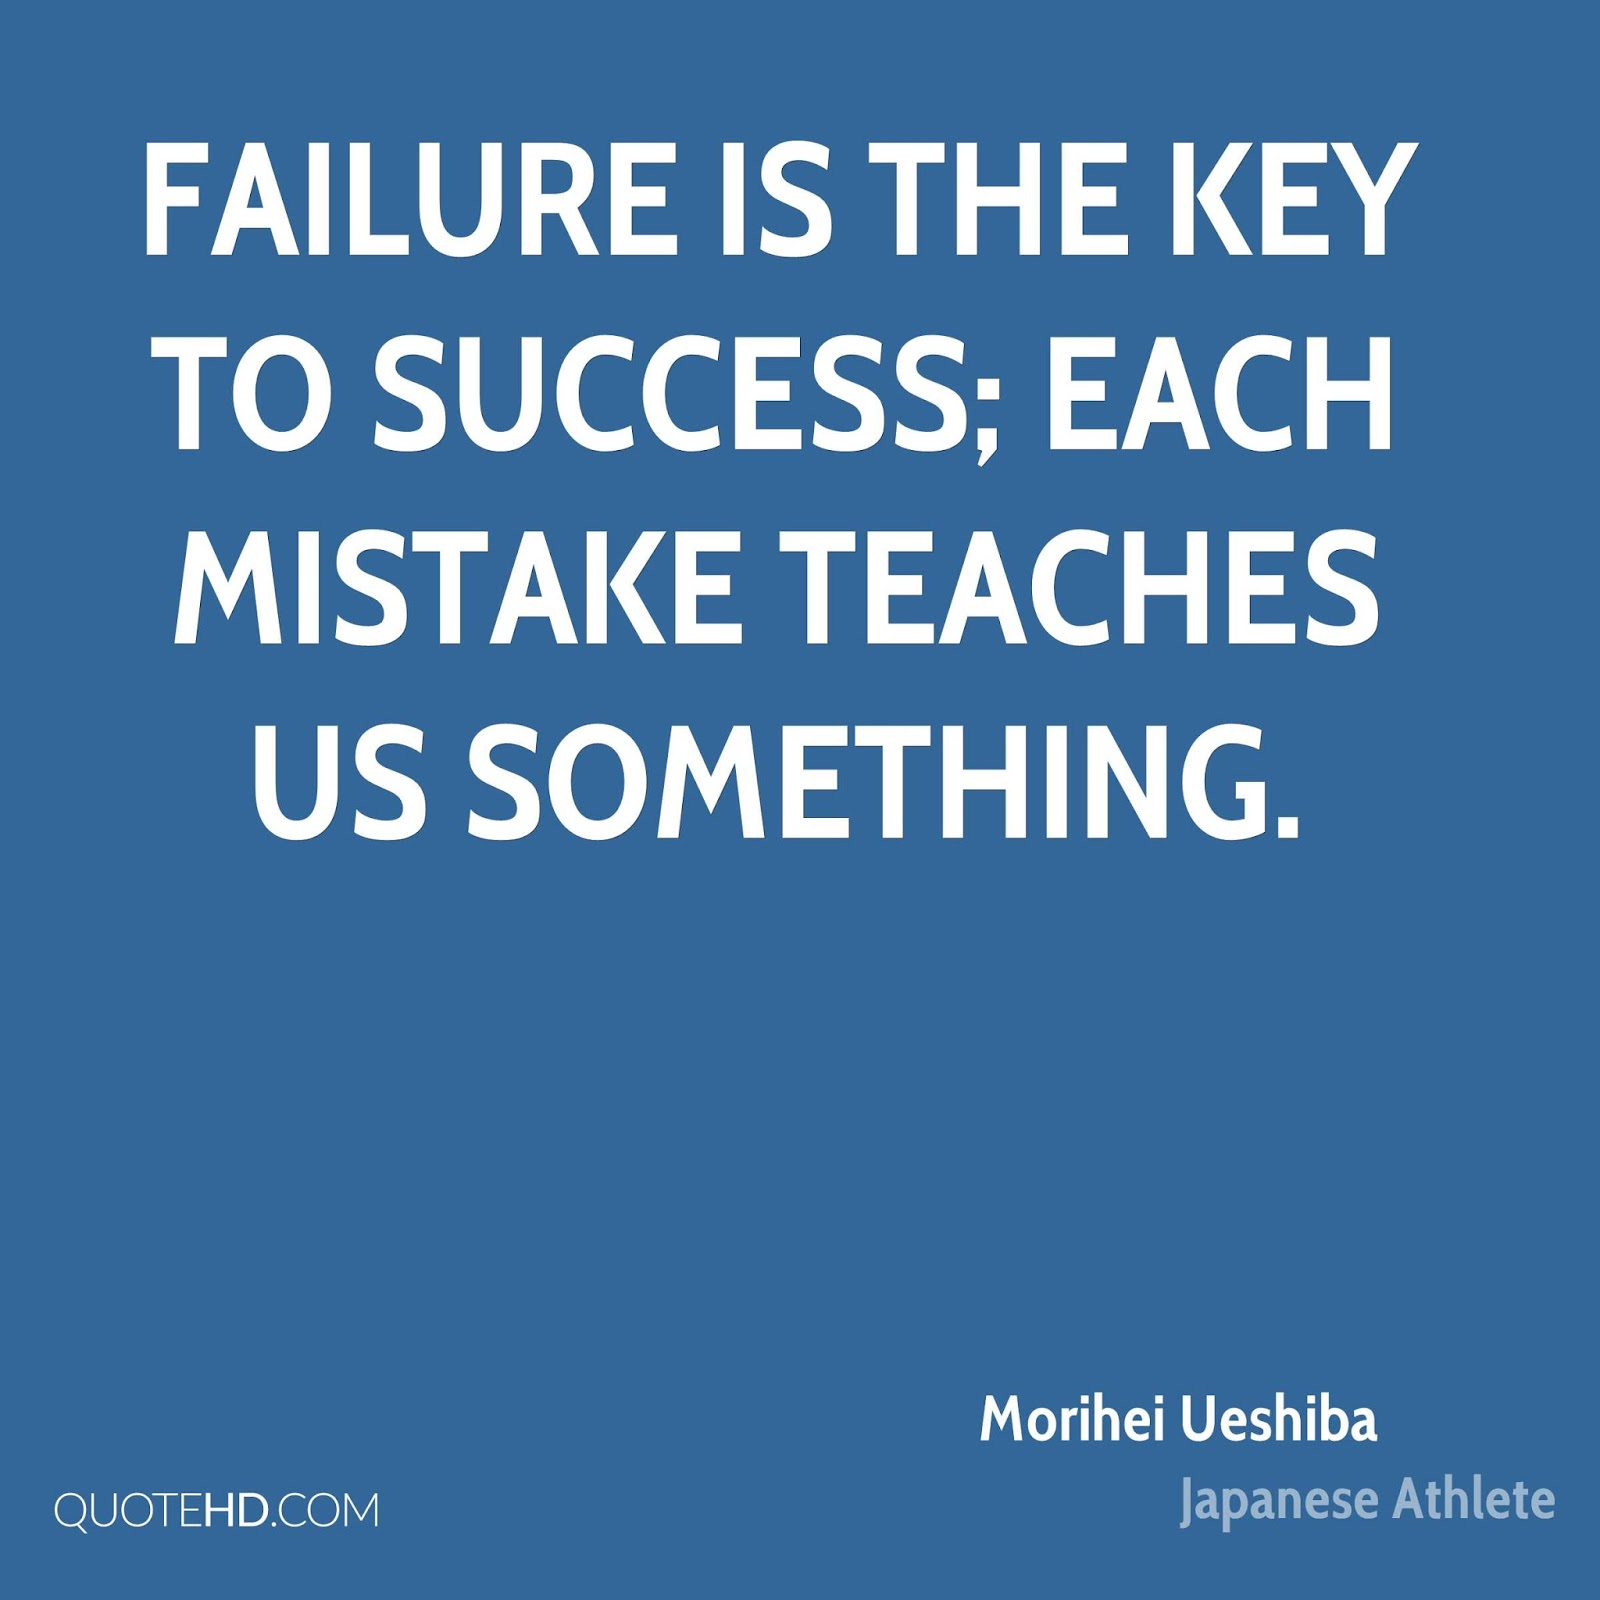 failure is the key to success Failure is expected throughout life, but having the ability to learn from failure is considered a key path to growth learning from failure leads to humility, adaptation, and resiliency unfortunately, most students are taught to fear failure from a young age to combat this trend, educators can emphasize having a growth mindset,.